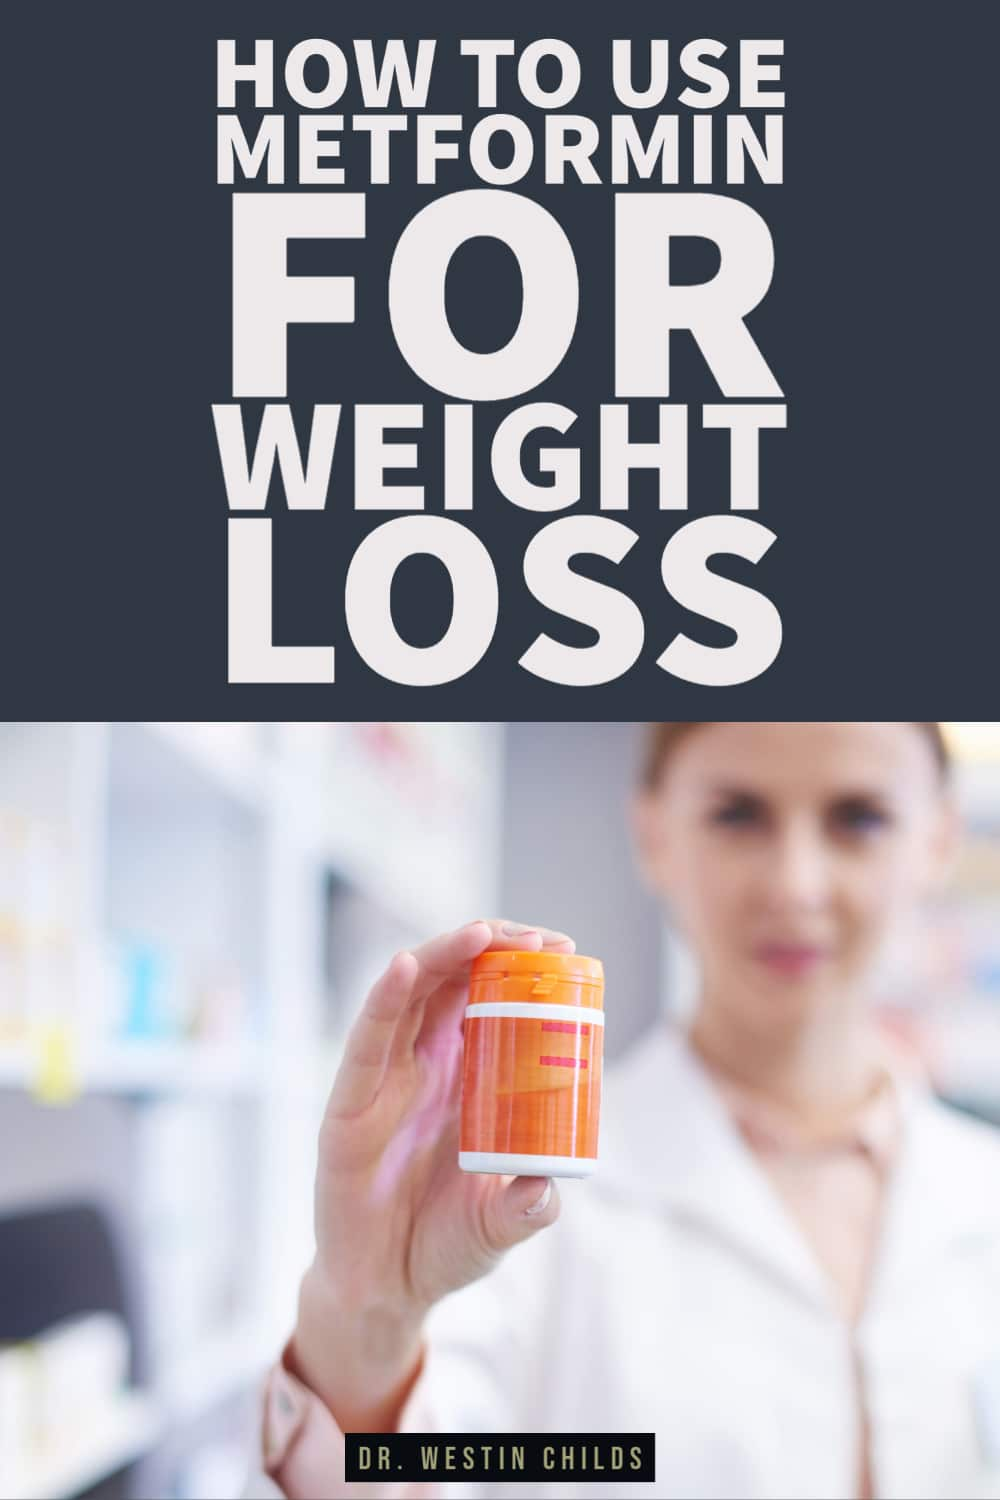 does using metformin for weight loss work?